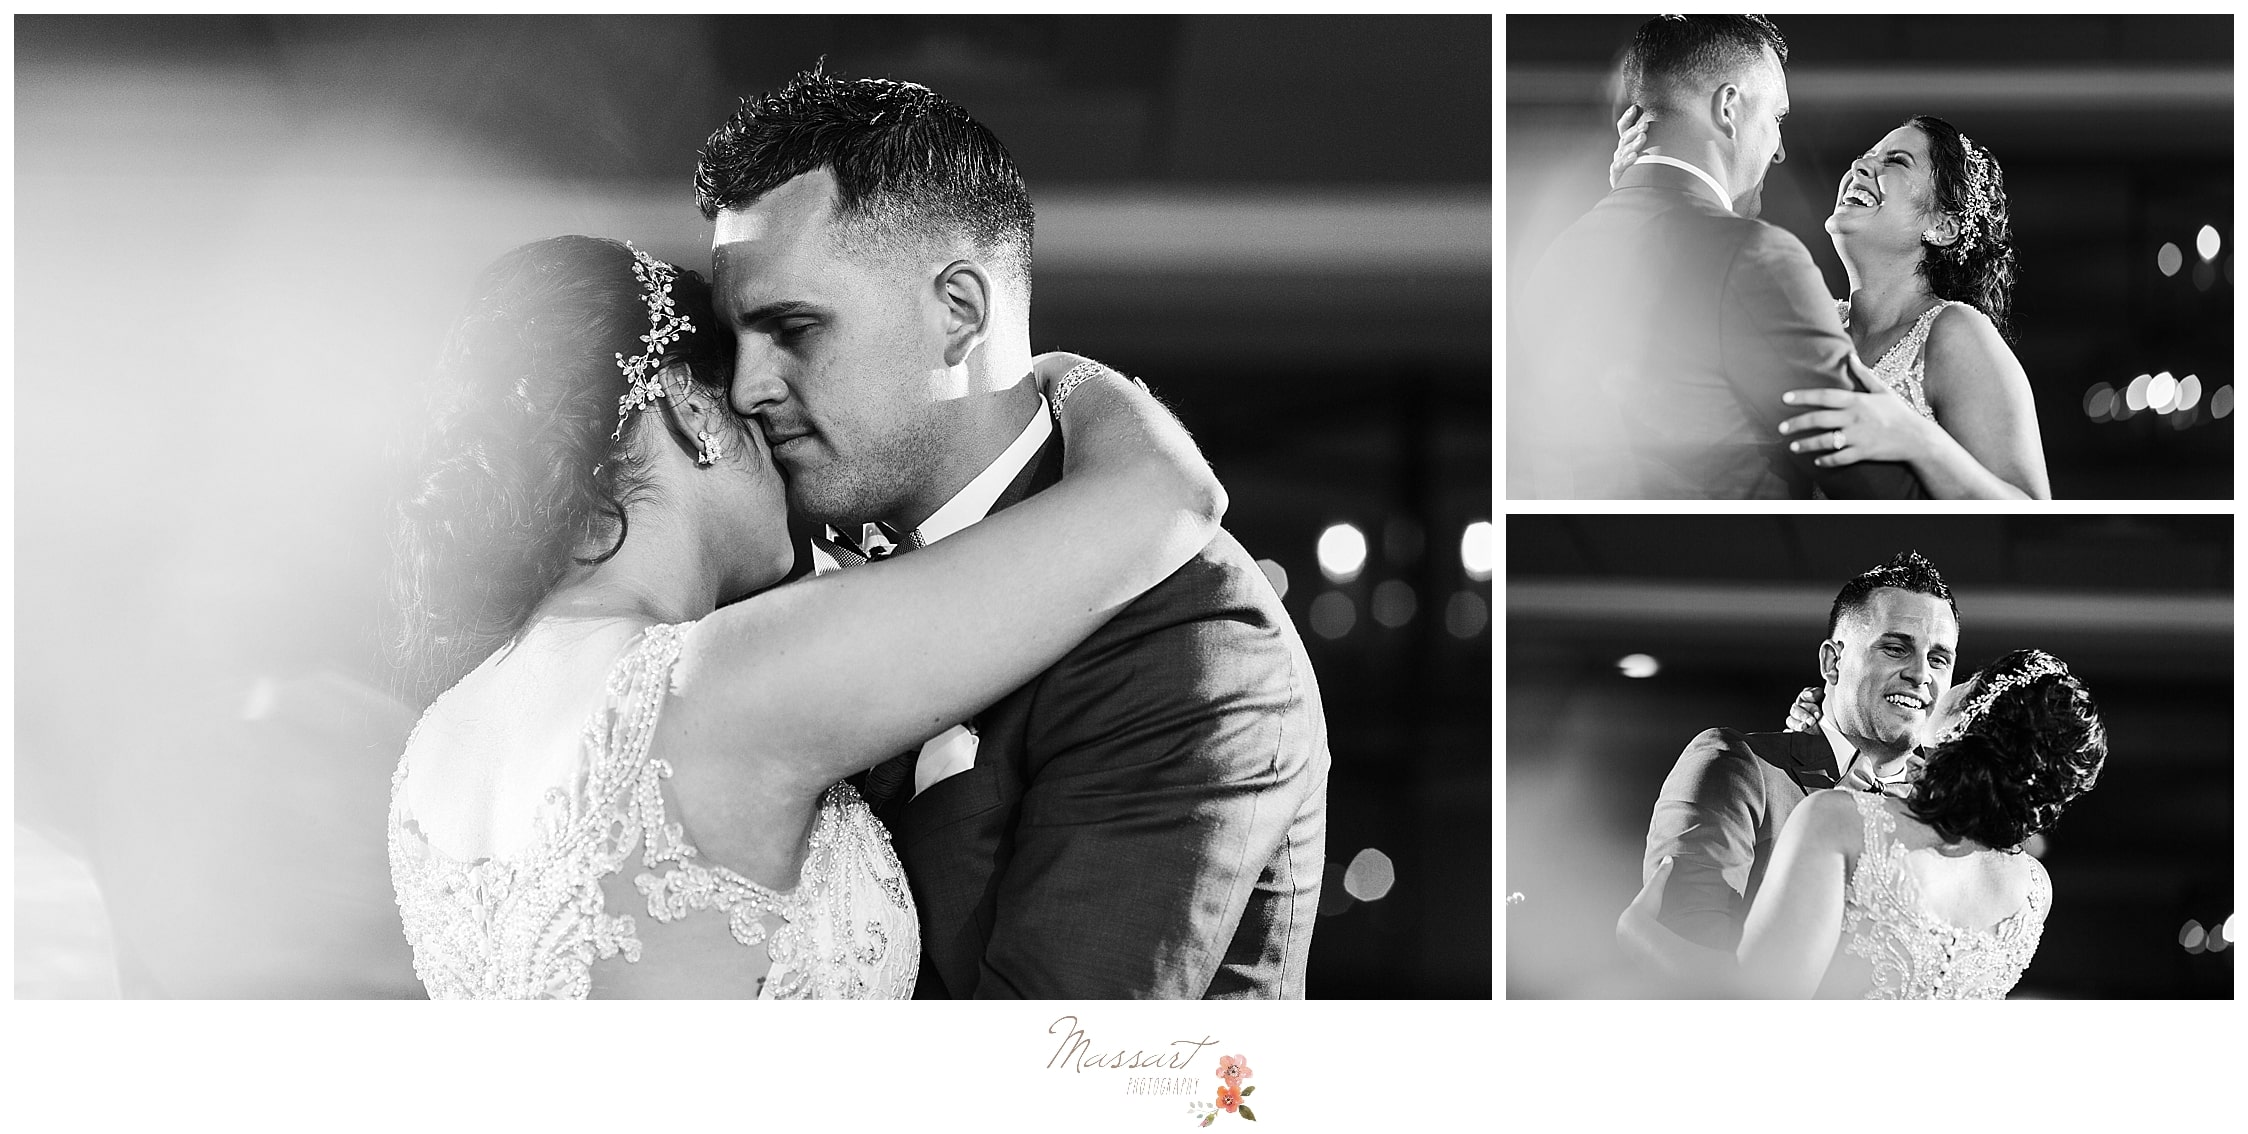 Emotional moments between bride and groom during their first dance at Harbor Lights photographed by CT wedding photographers Massart Photography.